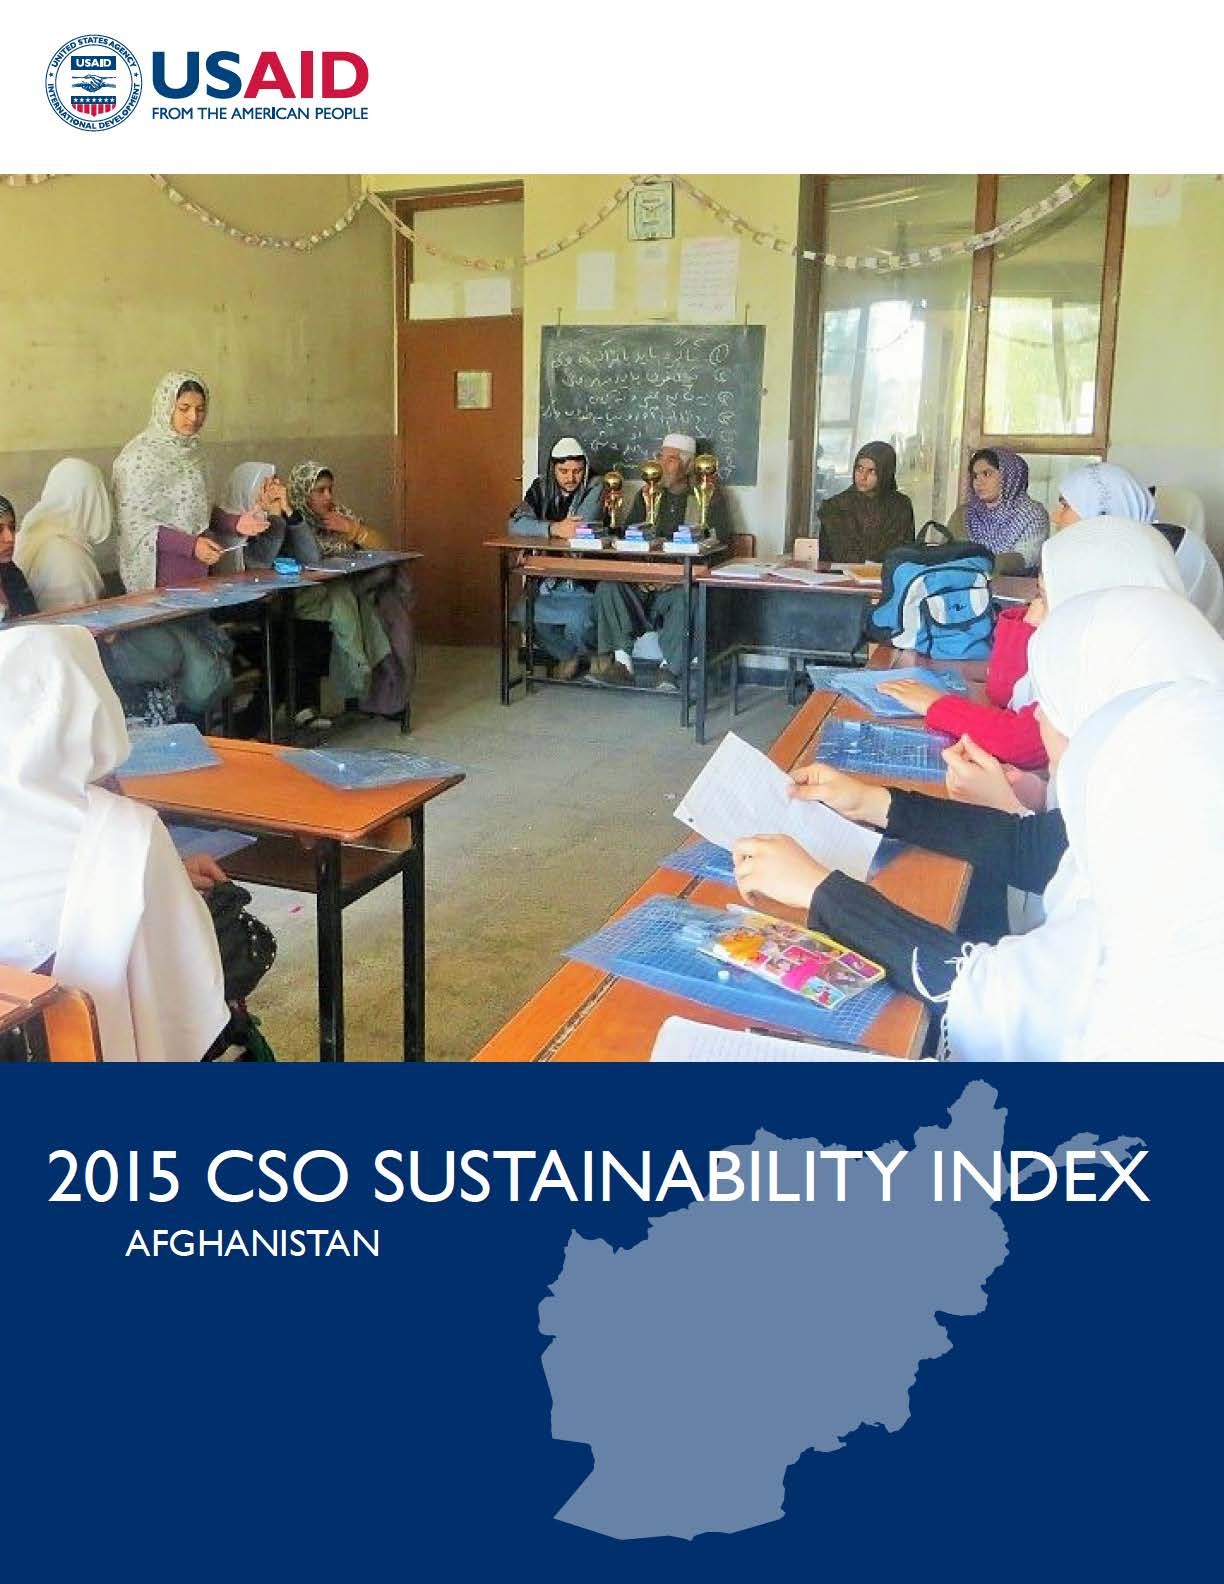 2015 CSO Sustainability Index (CSOSI) for Afghanistan